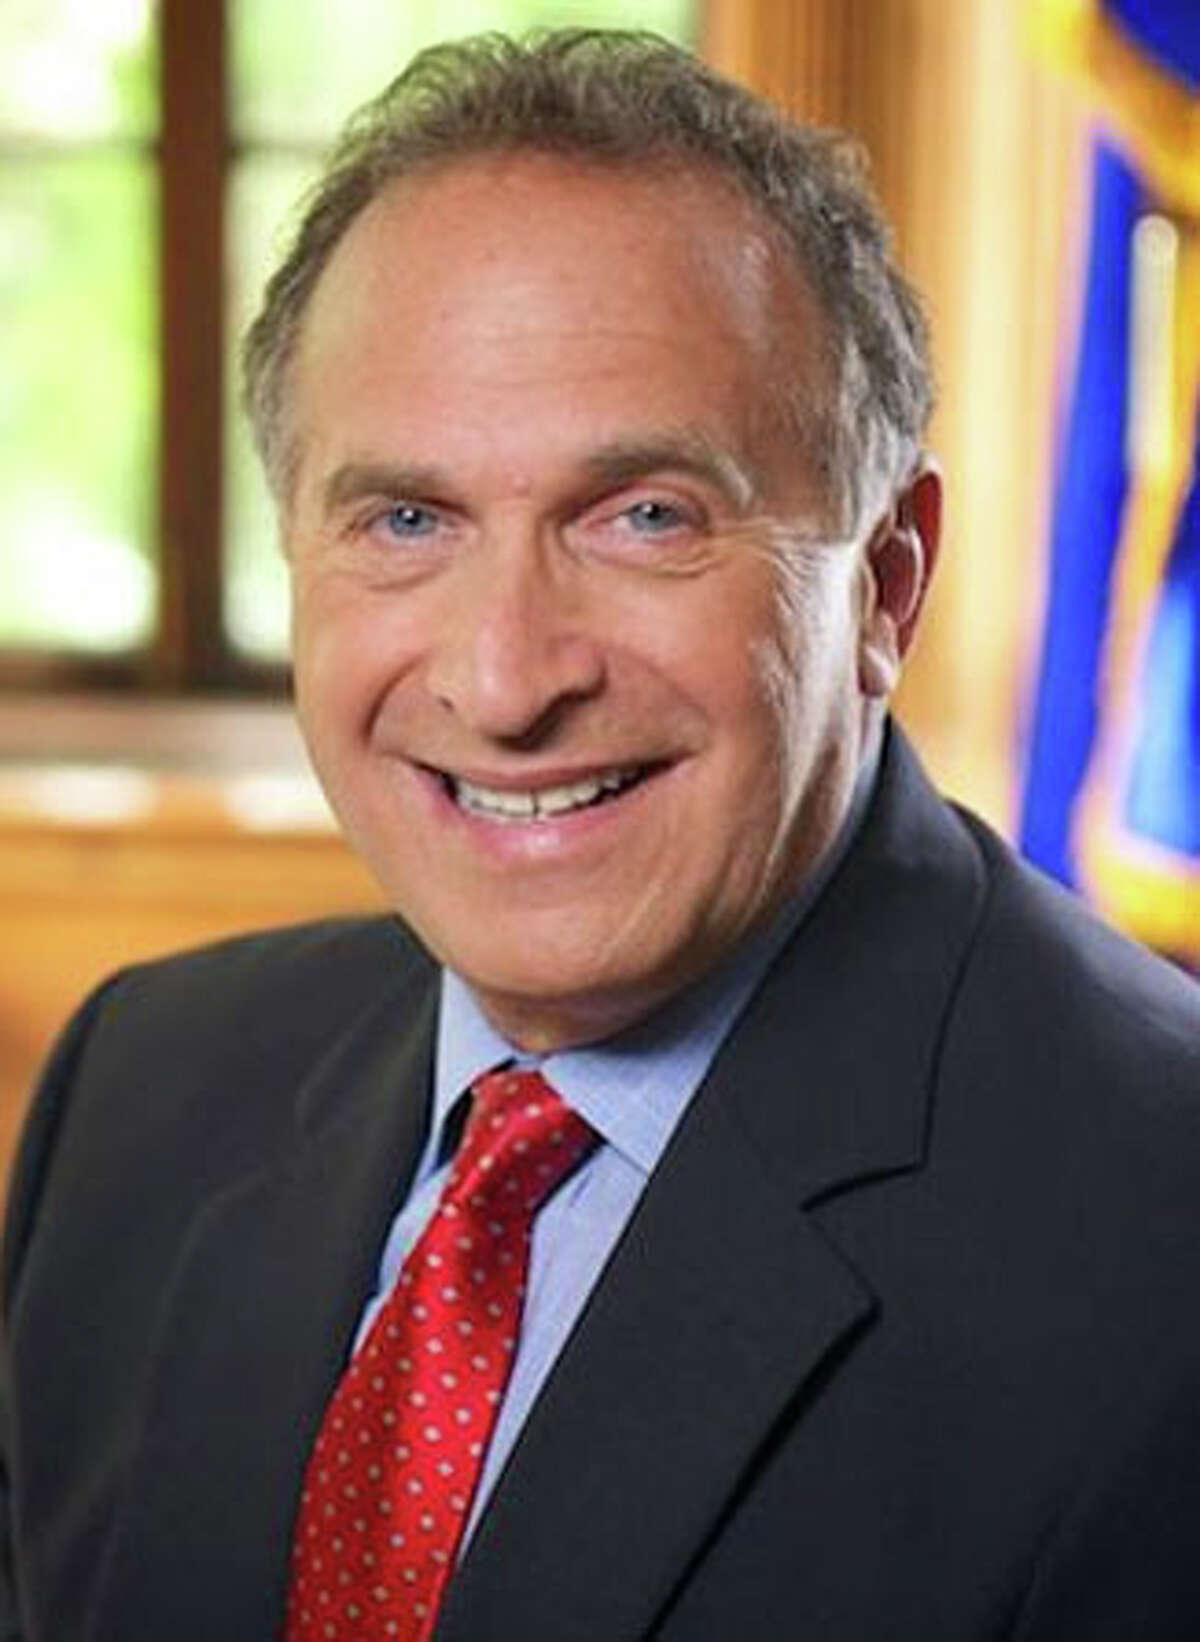 Mark Greenberg Republican candidate for 5th Congressional District in CT